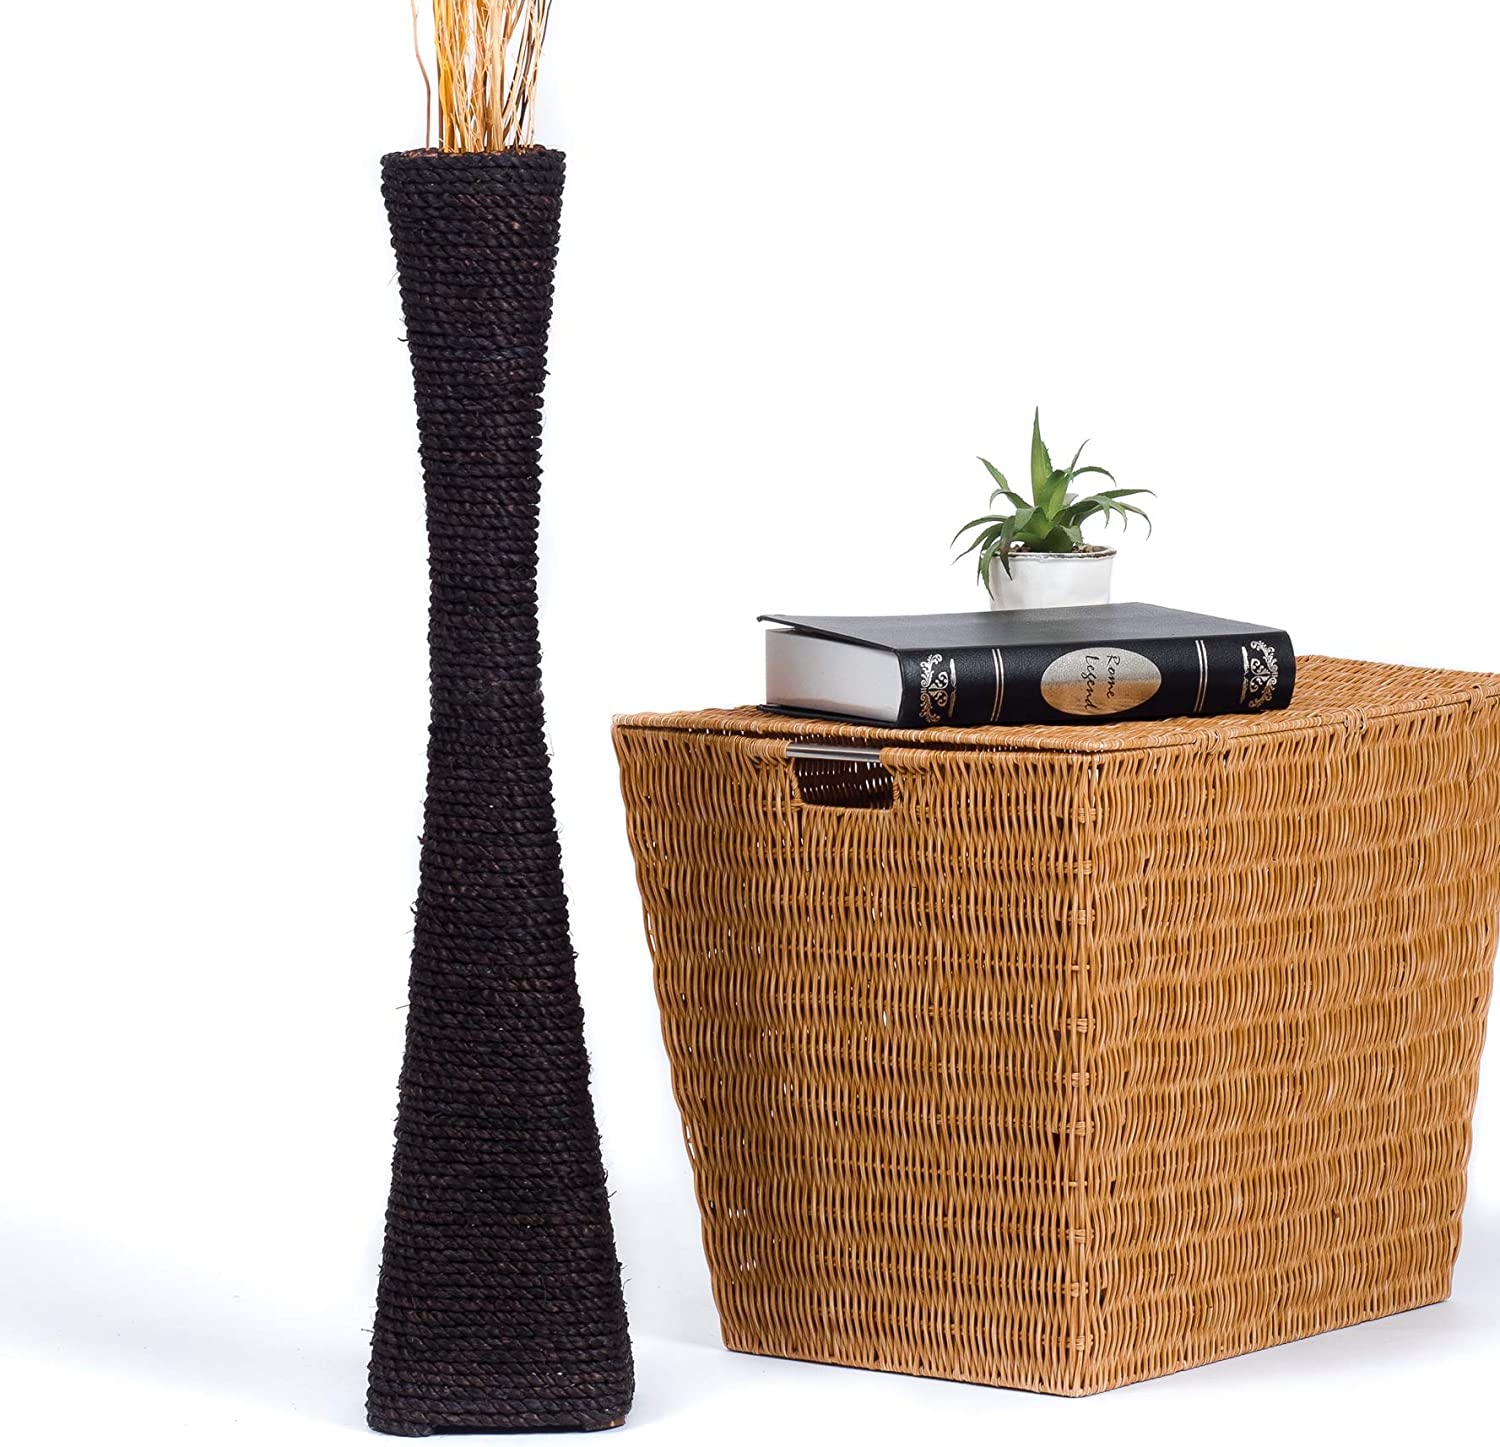 Leewadee Tall Big Floor Standing Vase for Home Decor 30 inches, Water Hyacinth, Black